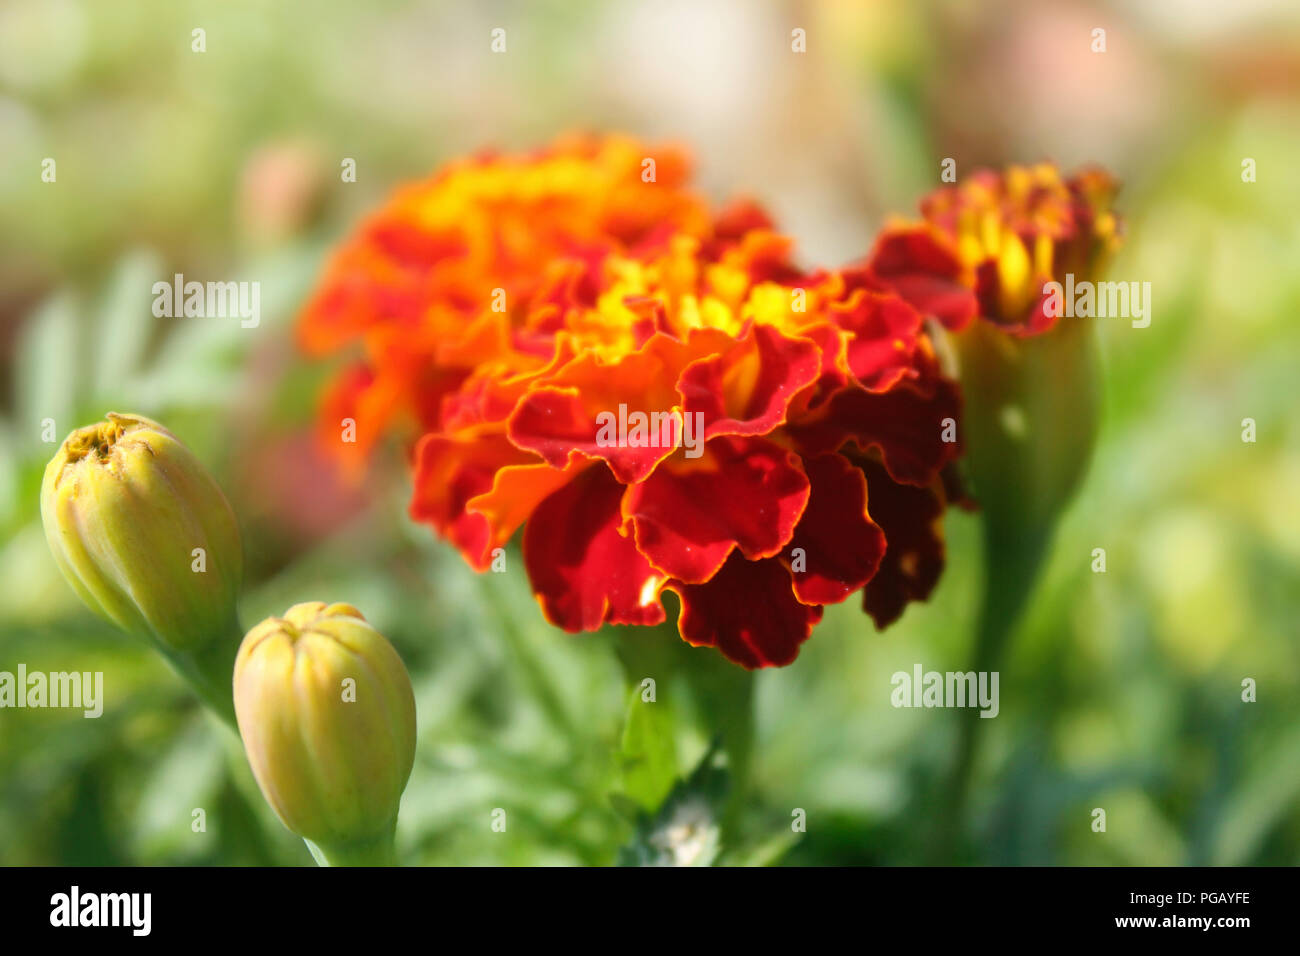 Red flower yellow center stock photos red flower yellow center red marigold tagetes flower with yellow center middle stock image mightylinksfo